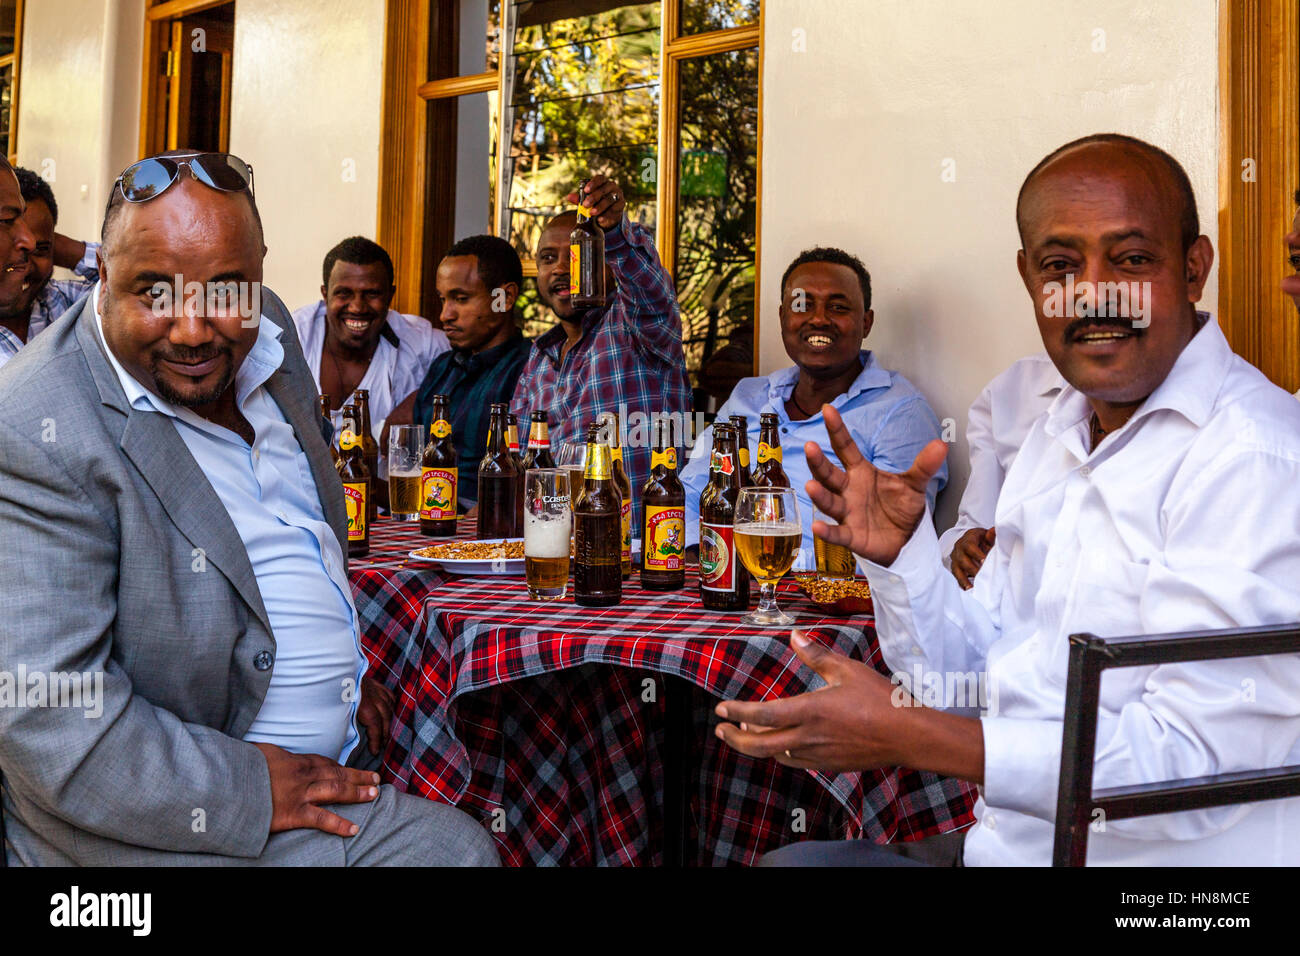 A Wedding Party, Guests At A Wedding Drinking Beer, Lake Ziway, Ziway, Ethiopia Stock Photo